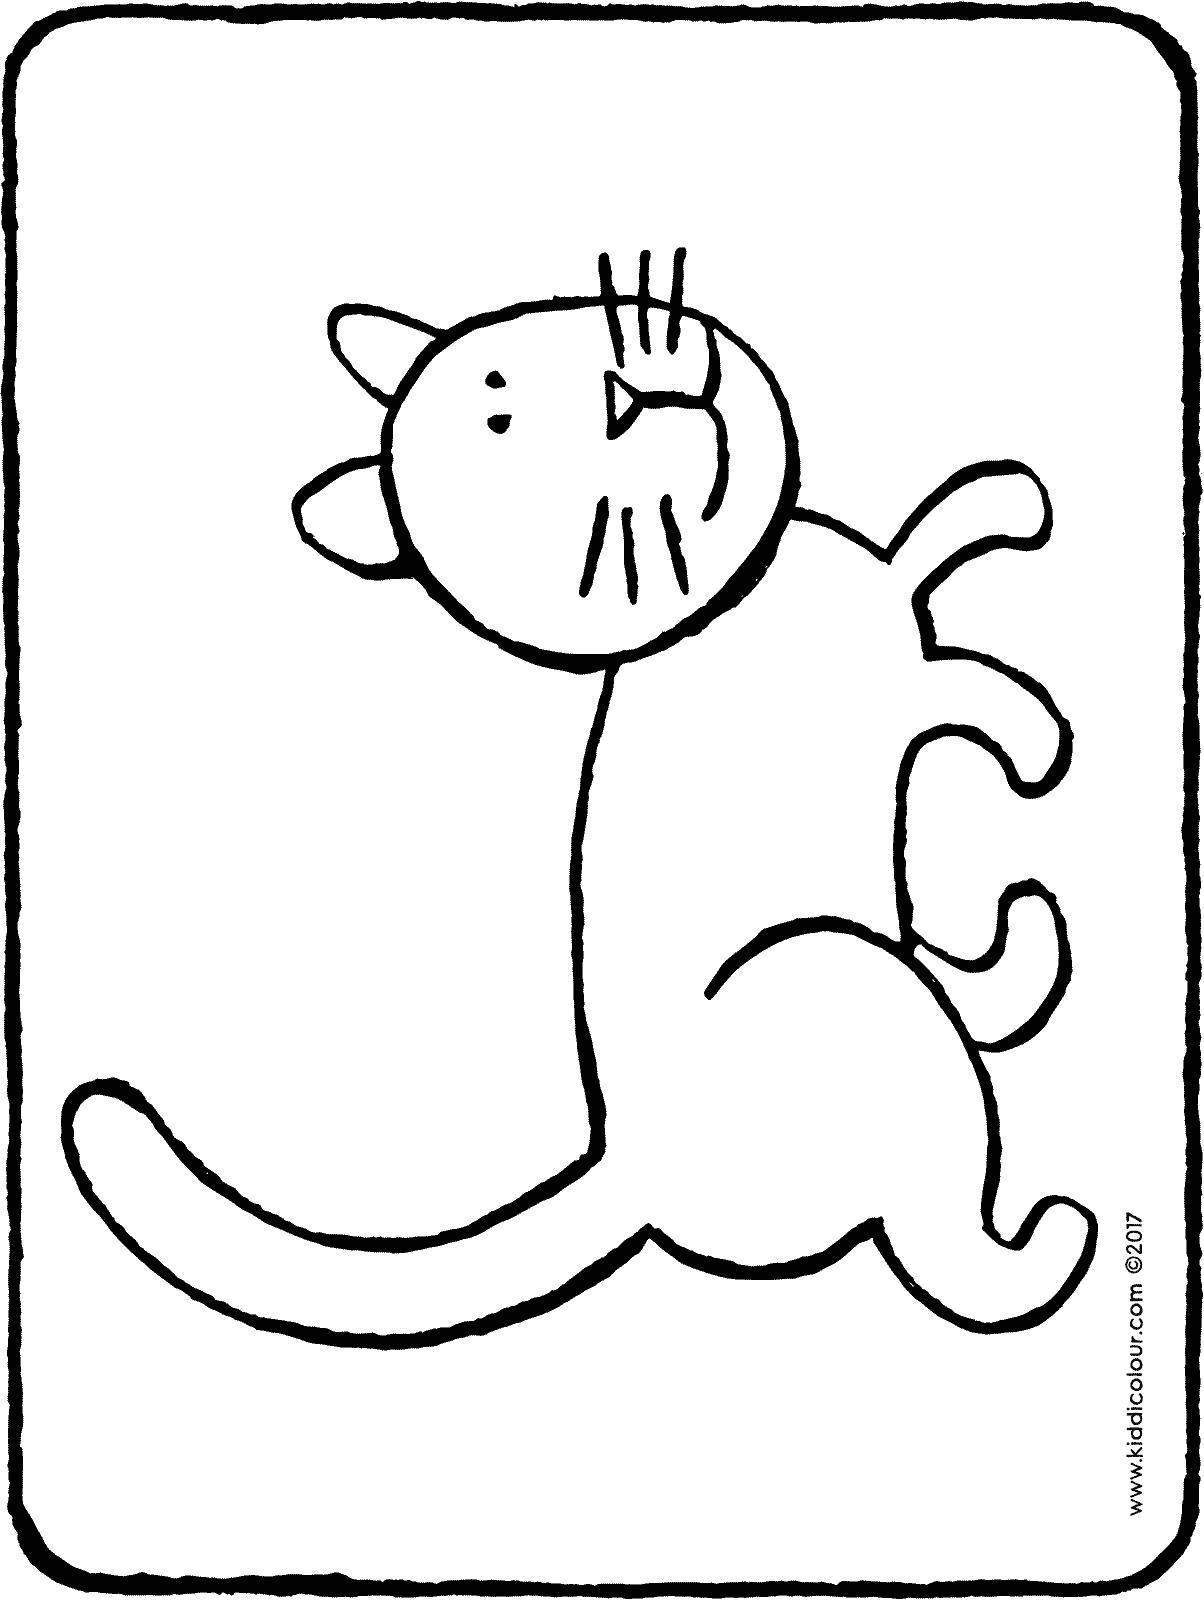 cat colouring page drawing picture 04H